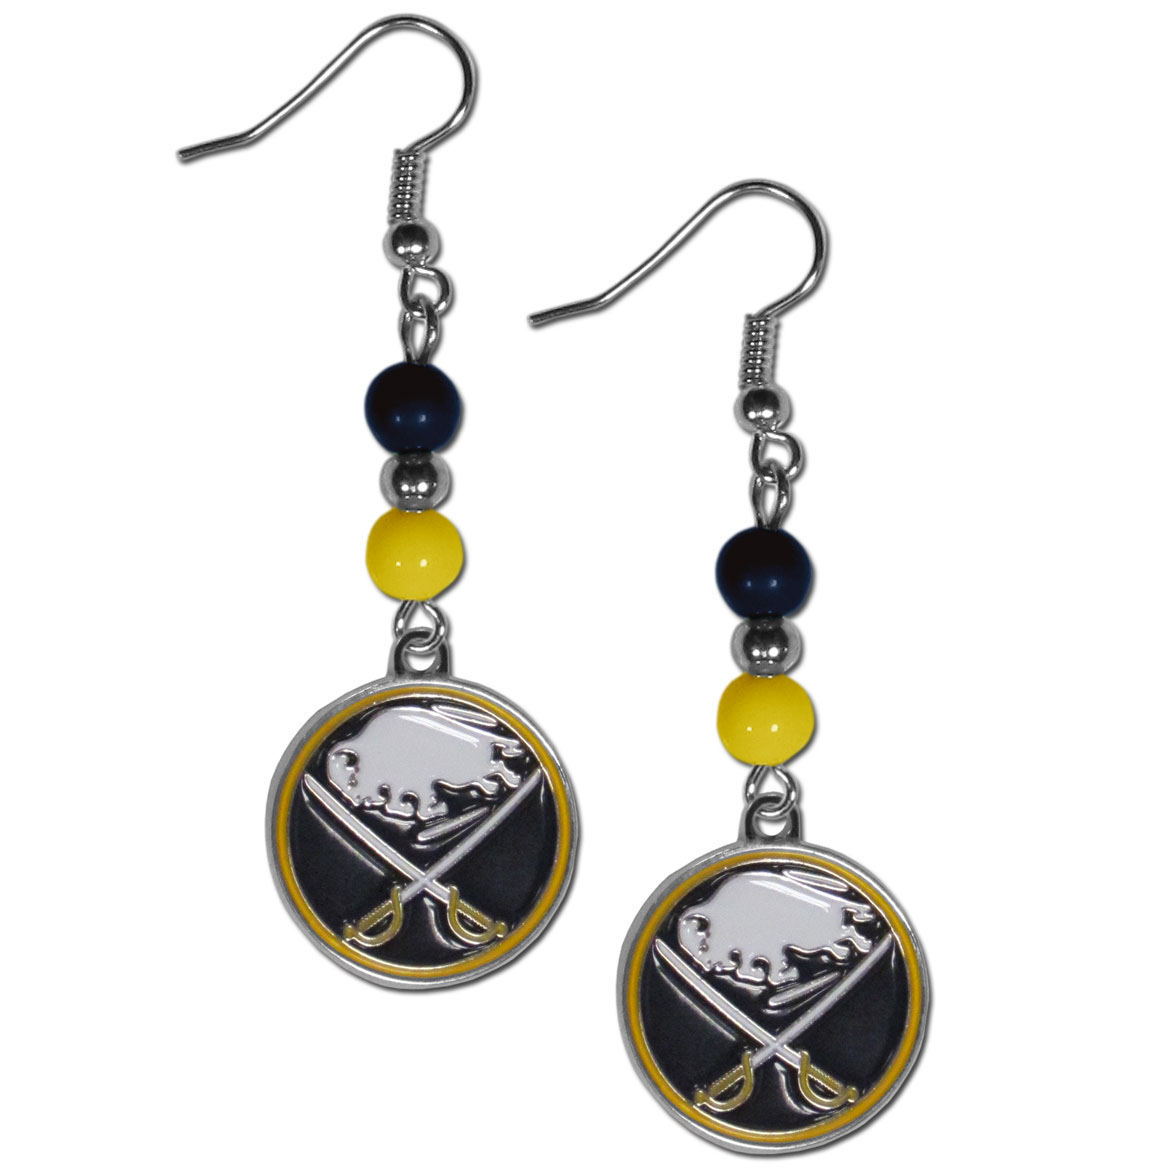 Buffalo Sabres® Fan Bead Dangle Earrings - Love your team, show it off with our Buffalo Sabres® bead dangle earrings! These super cute earrings hang approximately 2 inches and features 2 team colored beads and a high polish team charm. A must have for game day!